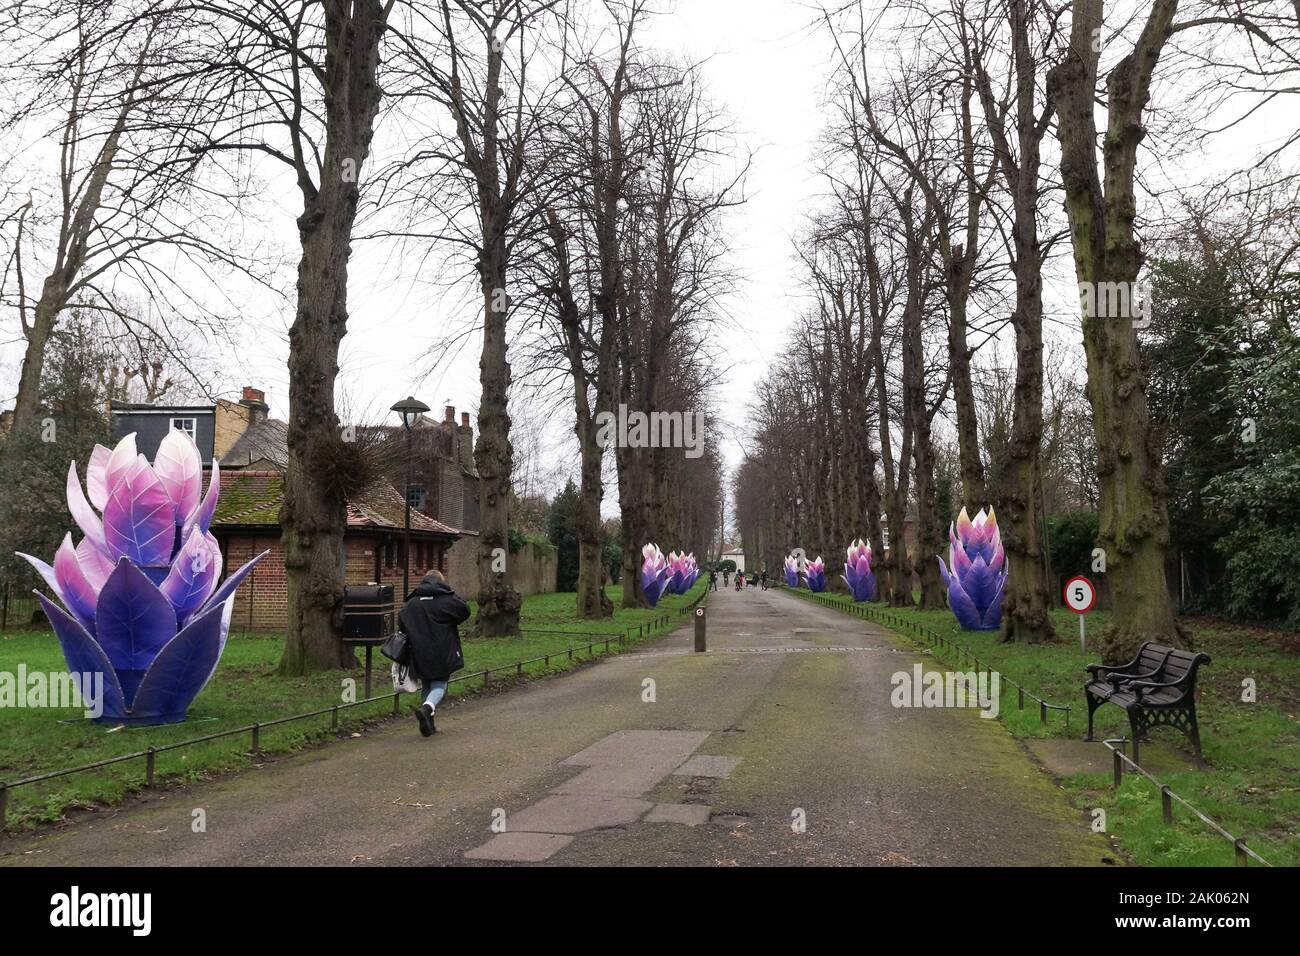 london uk 06th jan 2020 chiswick house prepares for lightopia festival due to open 22 january 2020 and will run until 01 march 2020 lightopia festival combines light displays water displays and acrobats credit peter hoganalamy live news 2AK062N - Lightopia Chiswick House And Gardens 22 January